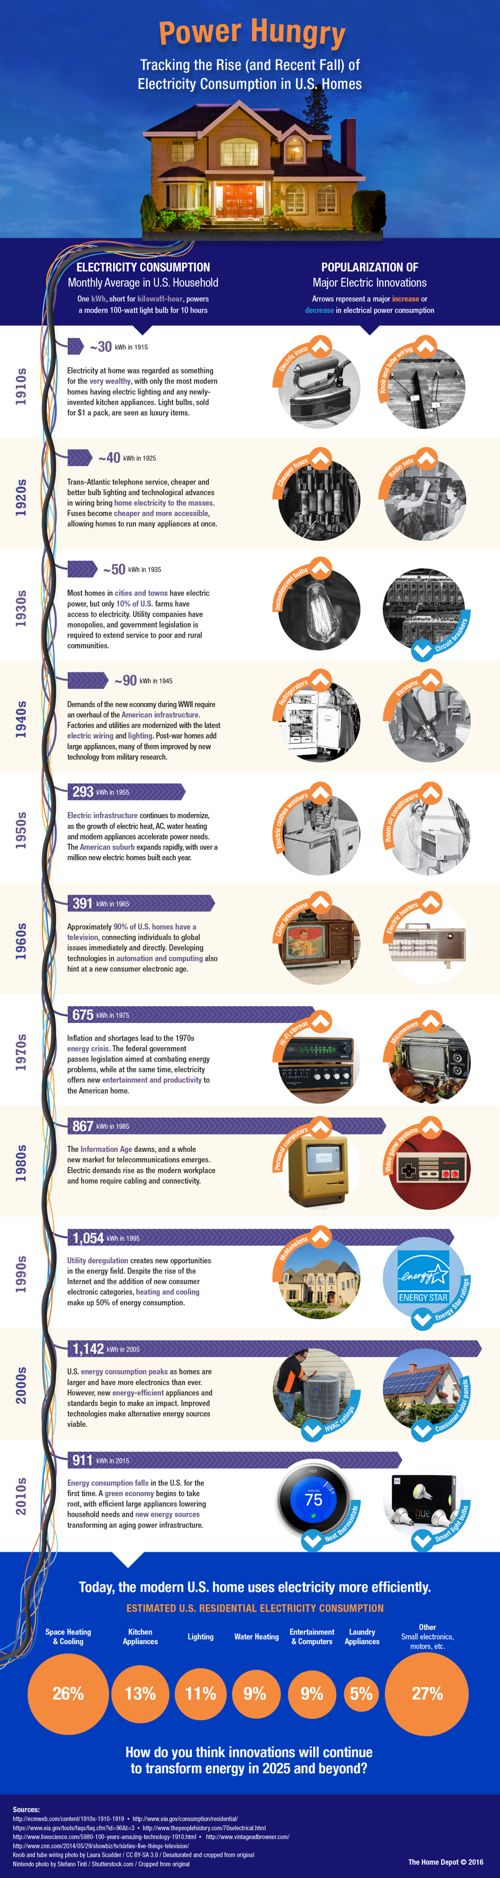 Power Hungry: The Rise & Fall of ElectricityConsumption - Blog About Infographics and Data Visualization - Cool Infographics